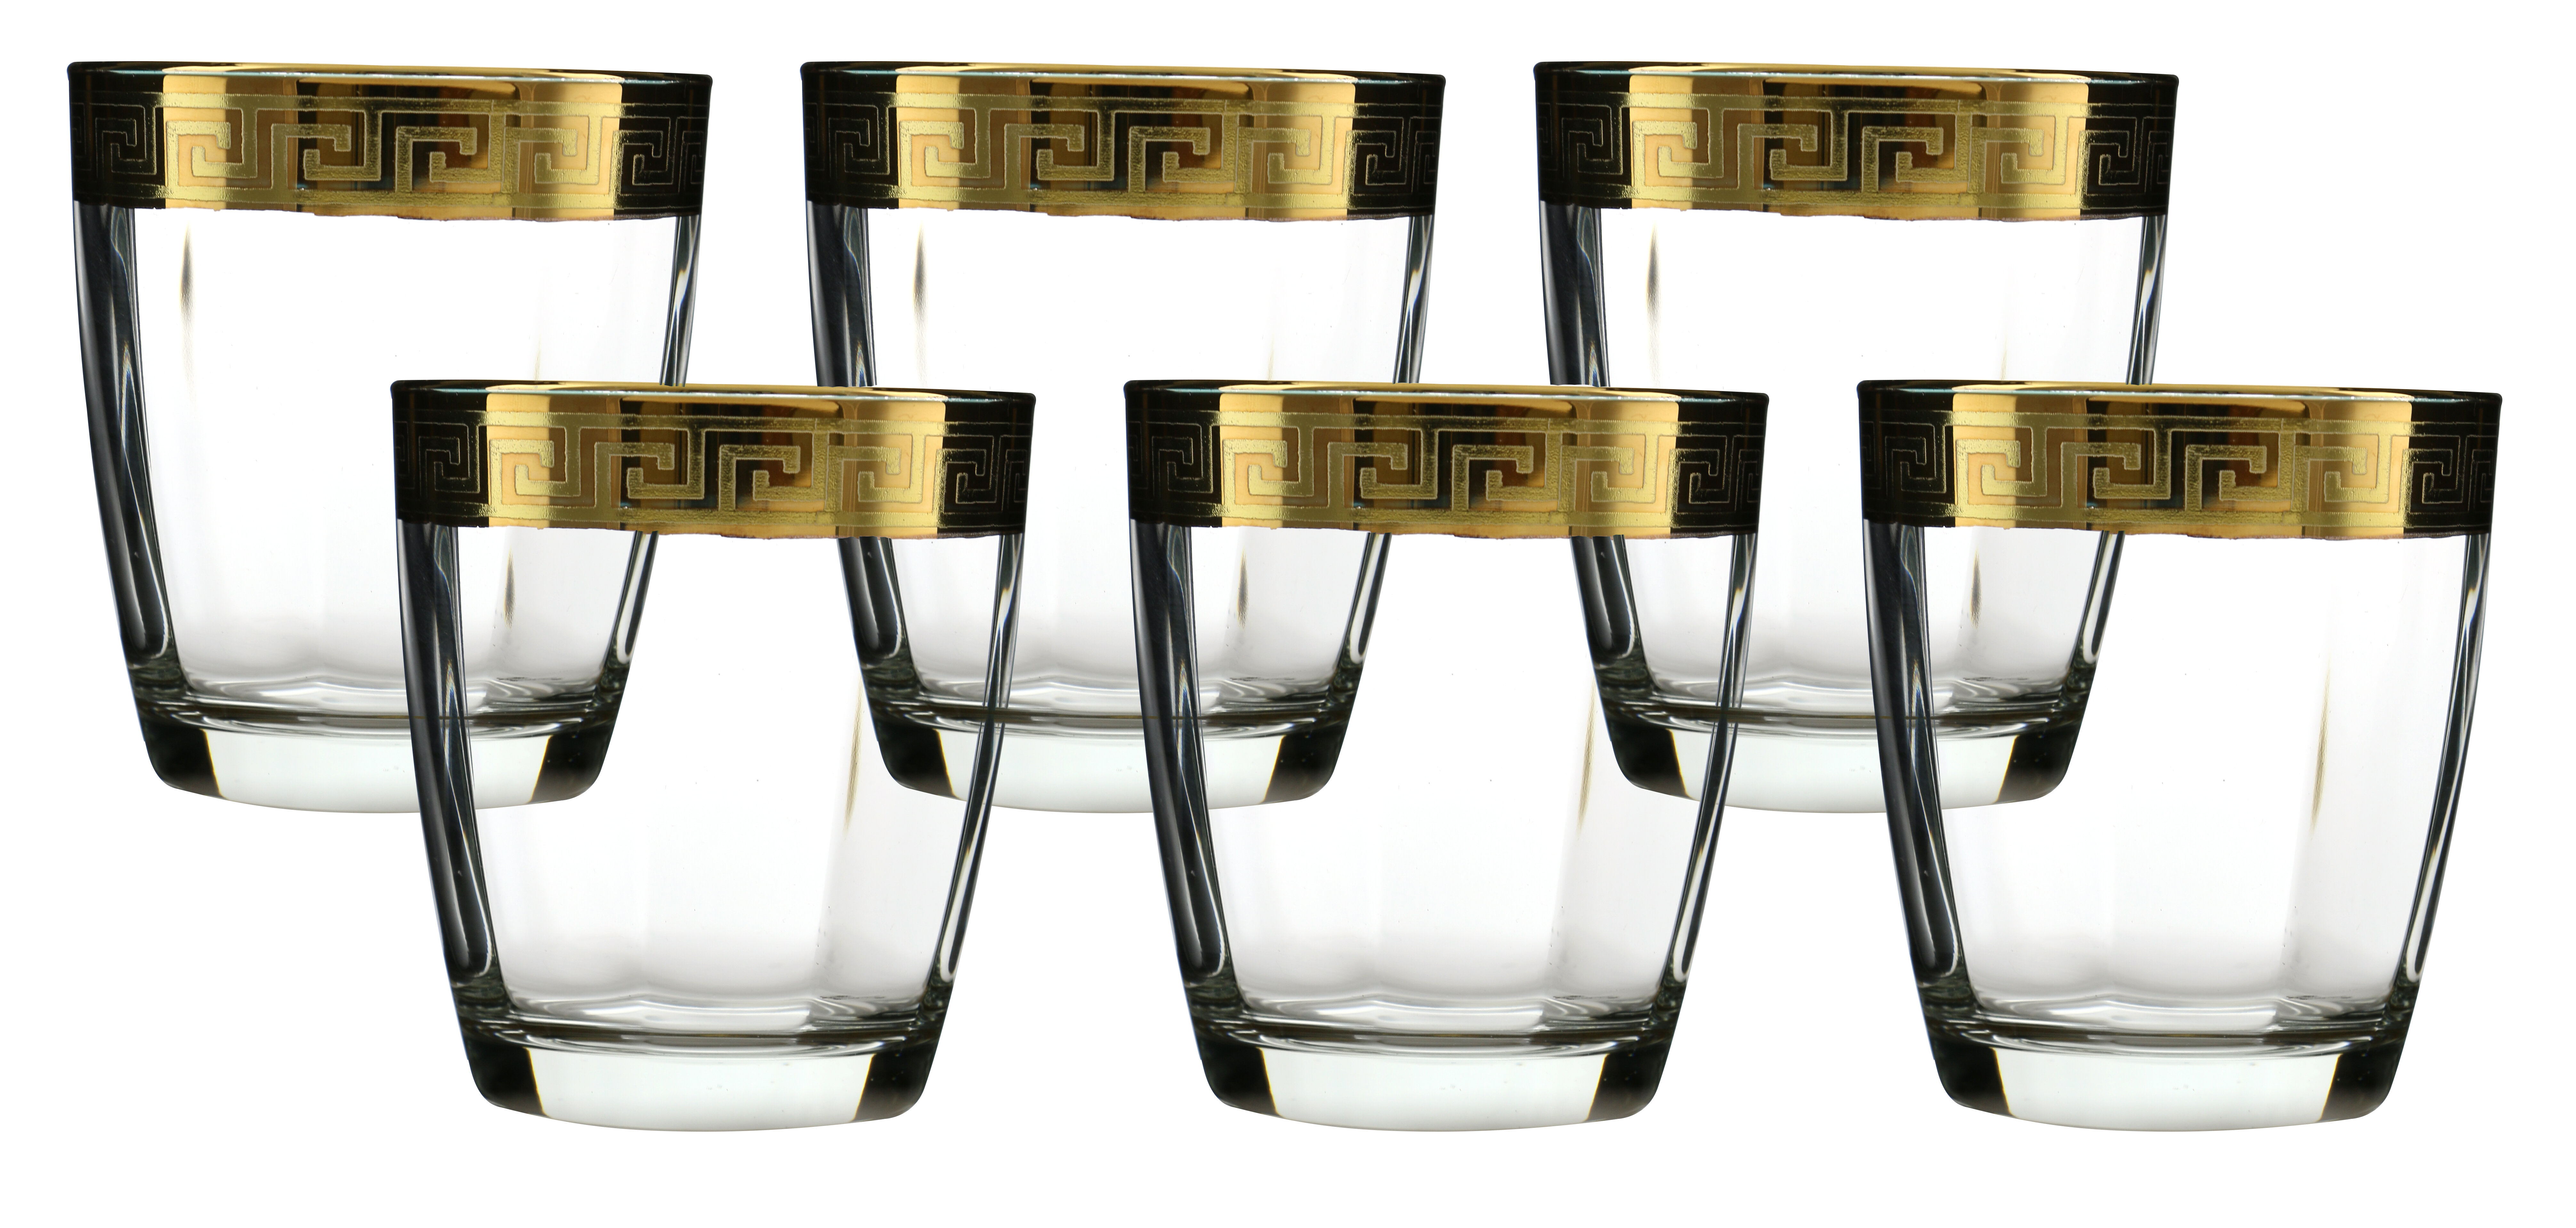 Three Star Double Old Fashion Glass With Versace Rim Decoration | Wayfair